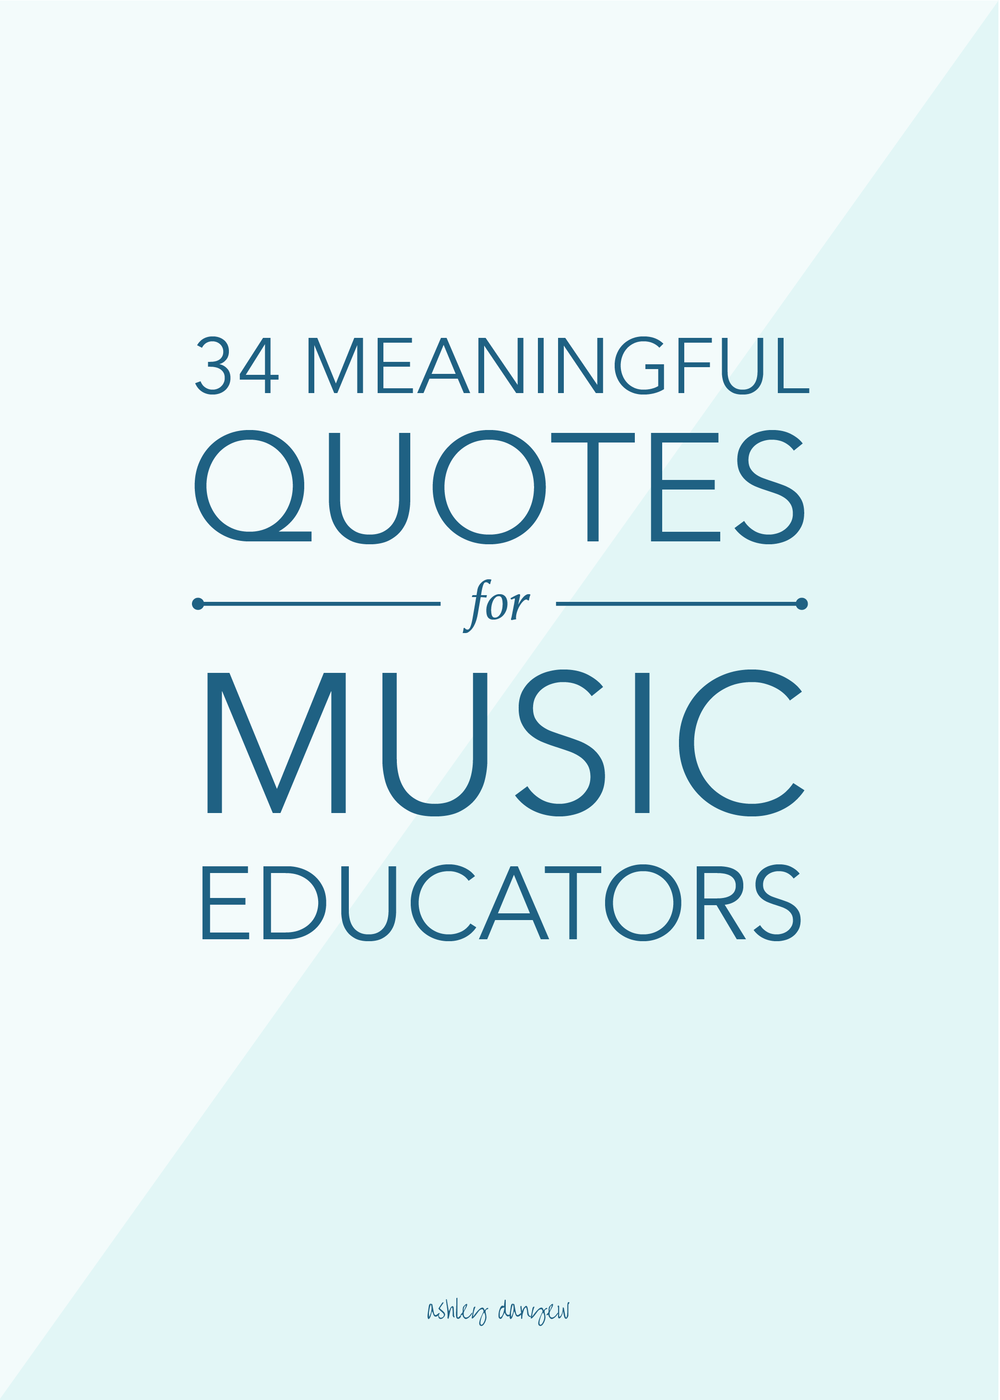 Copy of 34 Meaningful Quotes for Music Educators